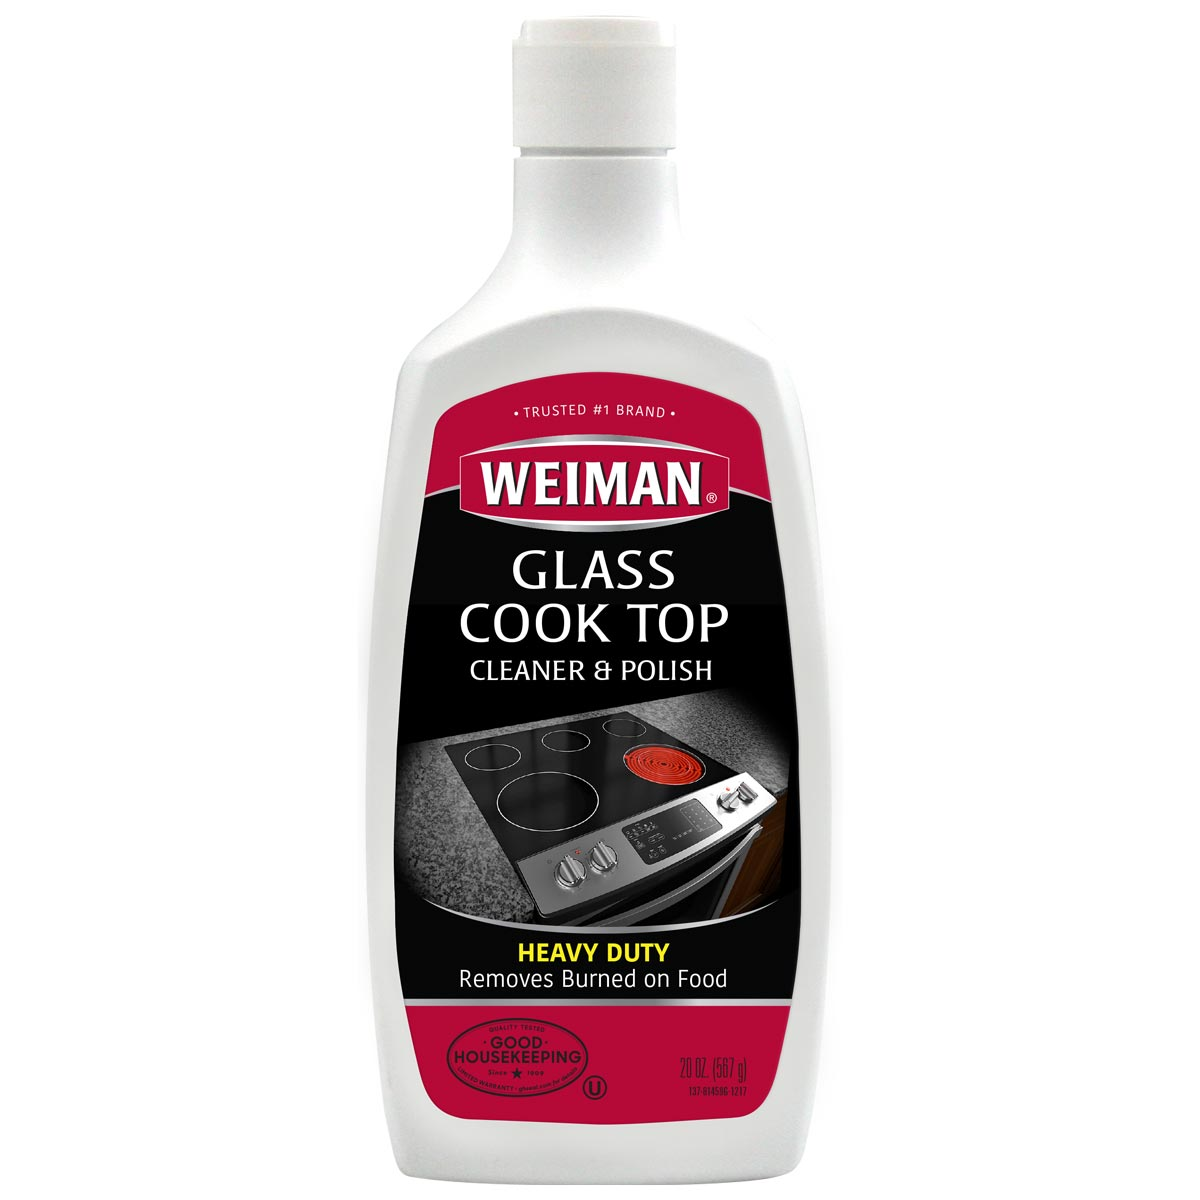 https://googone.com/media/catalog/product/w/e/weiman-cooktop-cleaner-heavy-duty_front_1.jpg